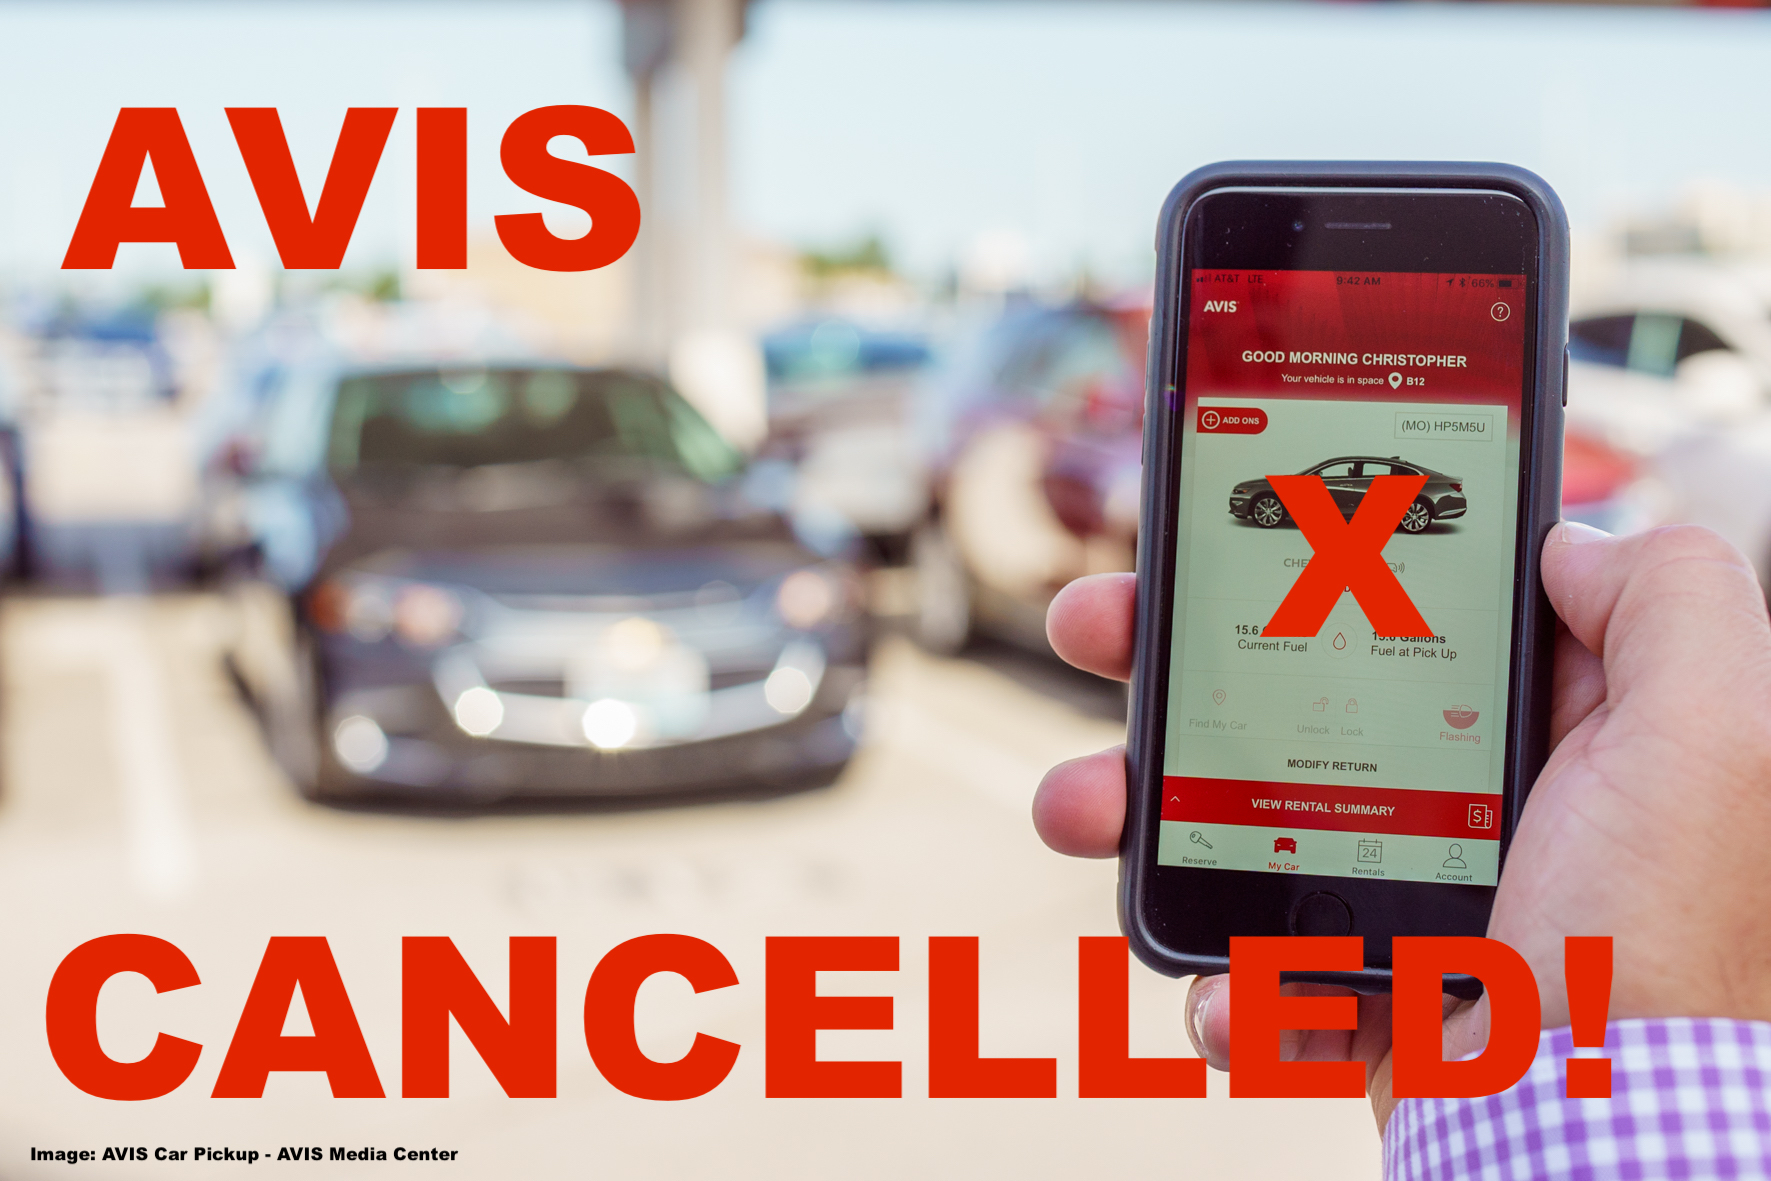 Whine Wednesdays Avis Prepaid Car Reservation Cancelled By Non